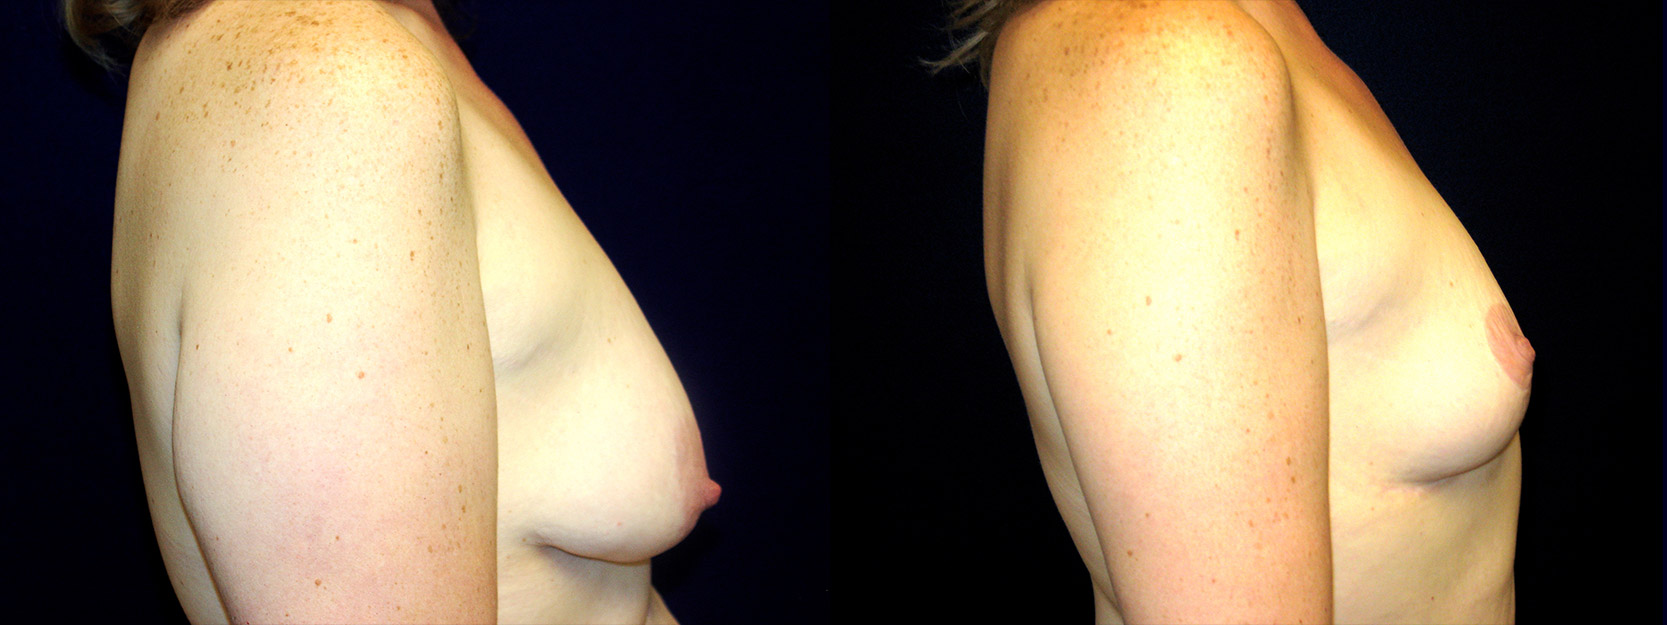 Right Profile View - Breast Reduction After Weight Loss